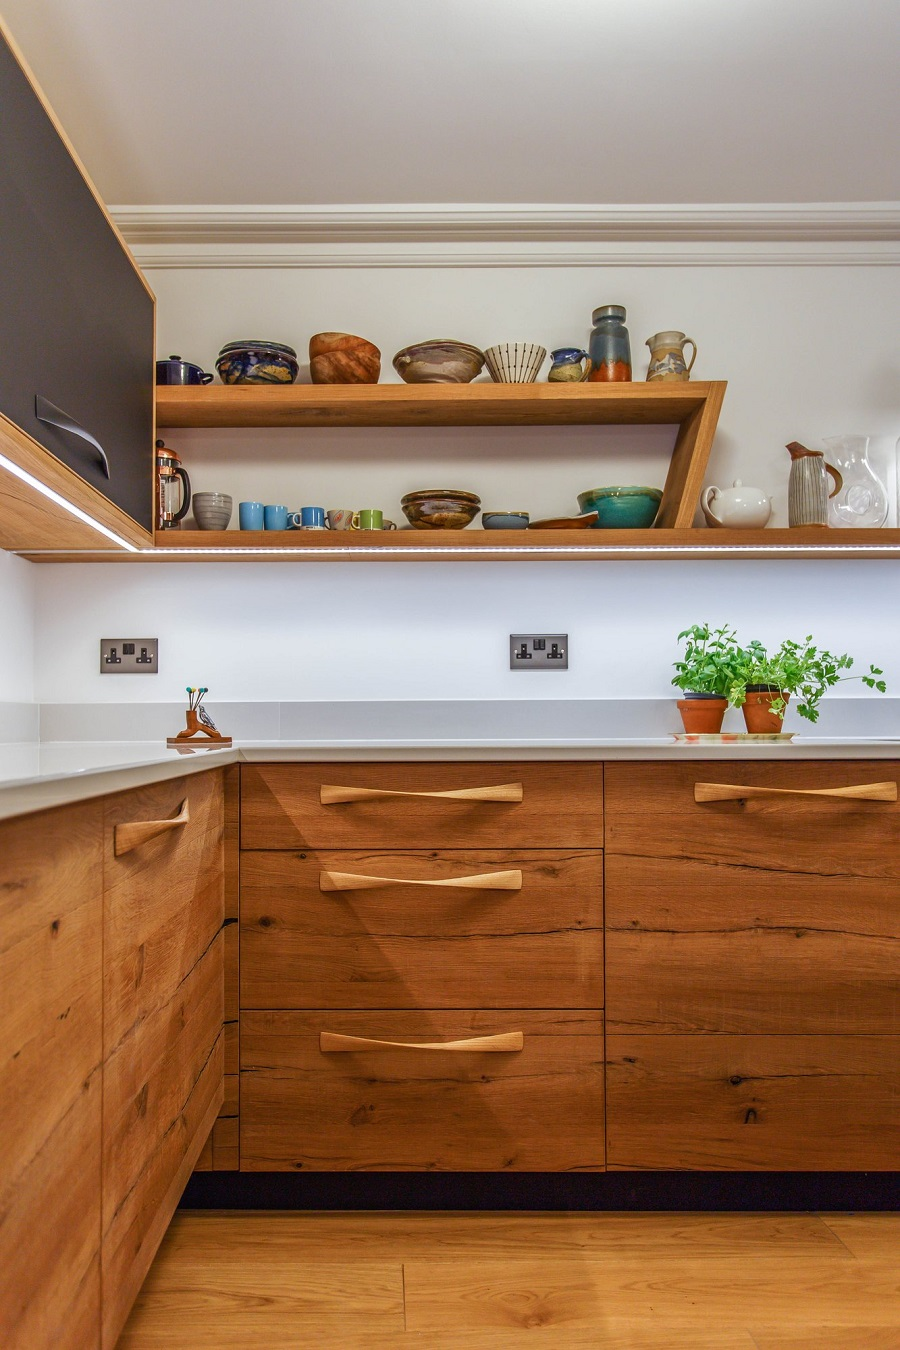 Introducing Kitchens from Wood Works Brighton